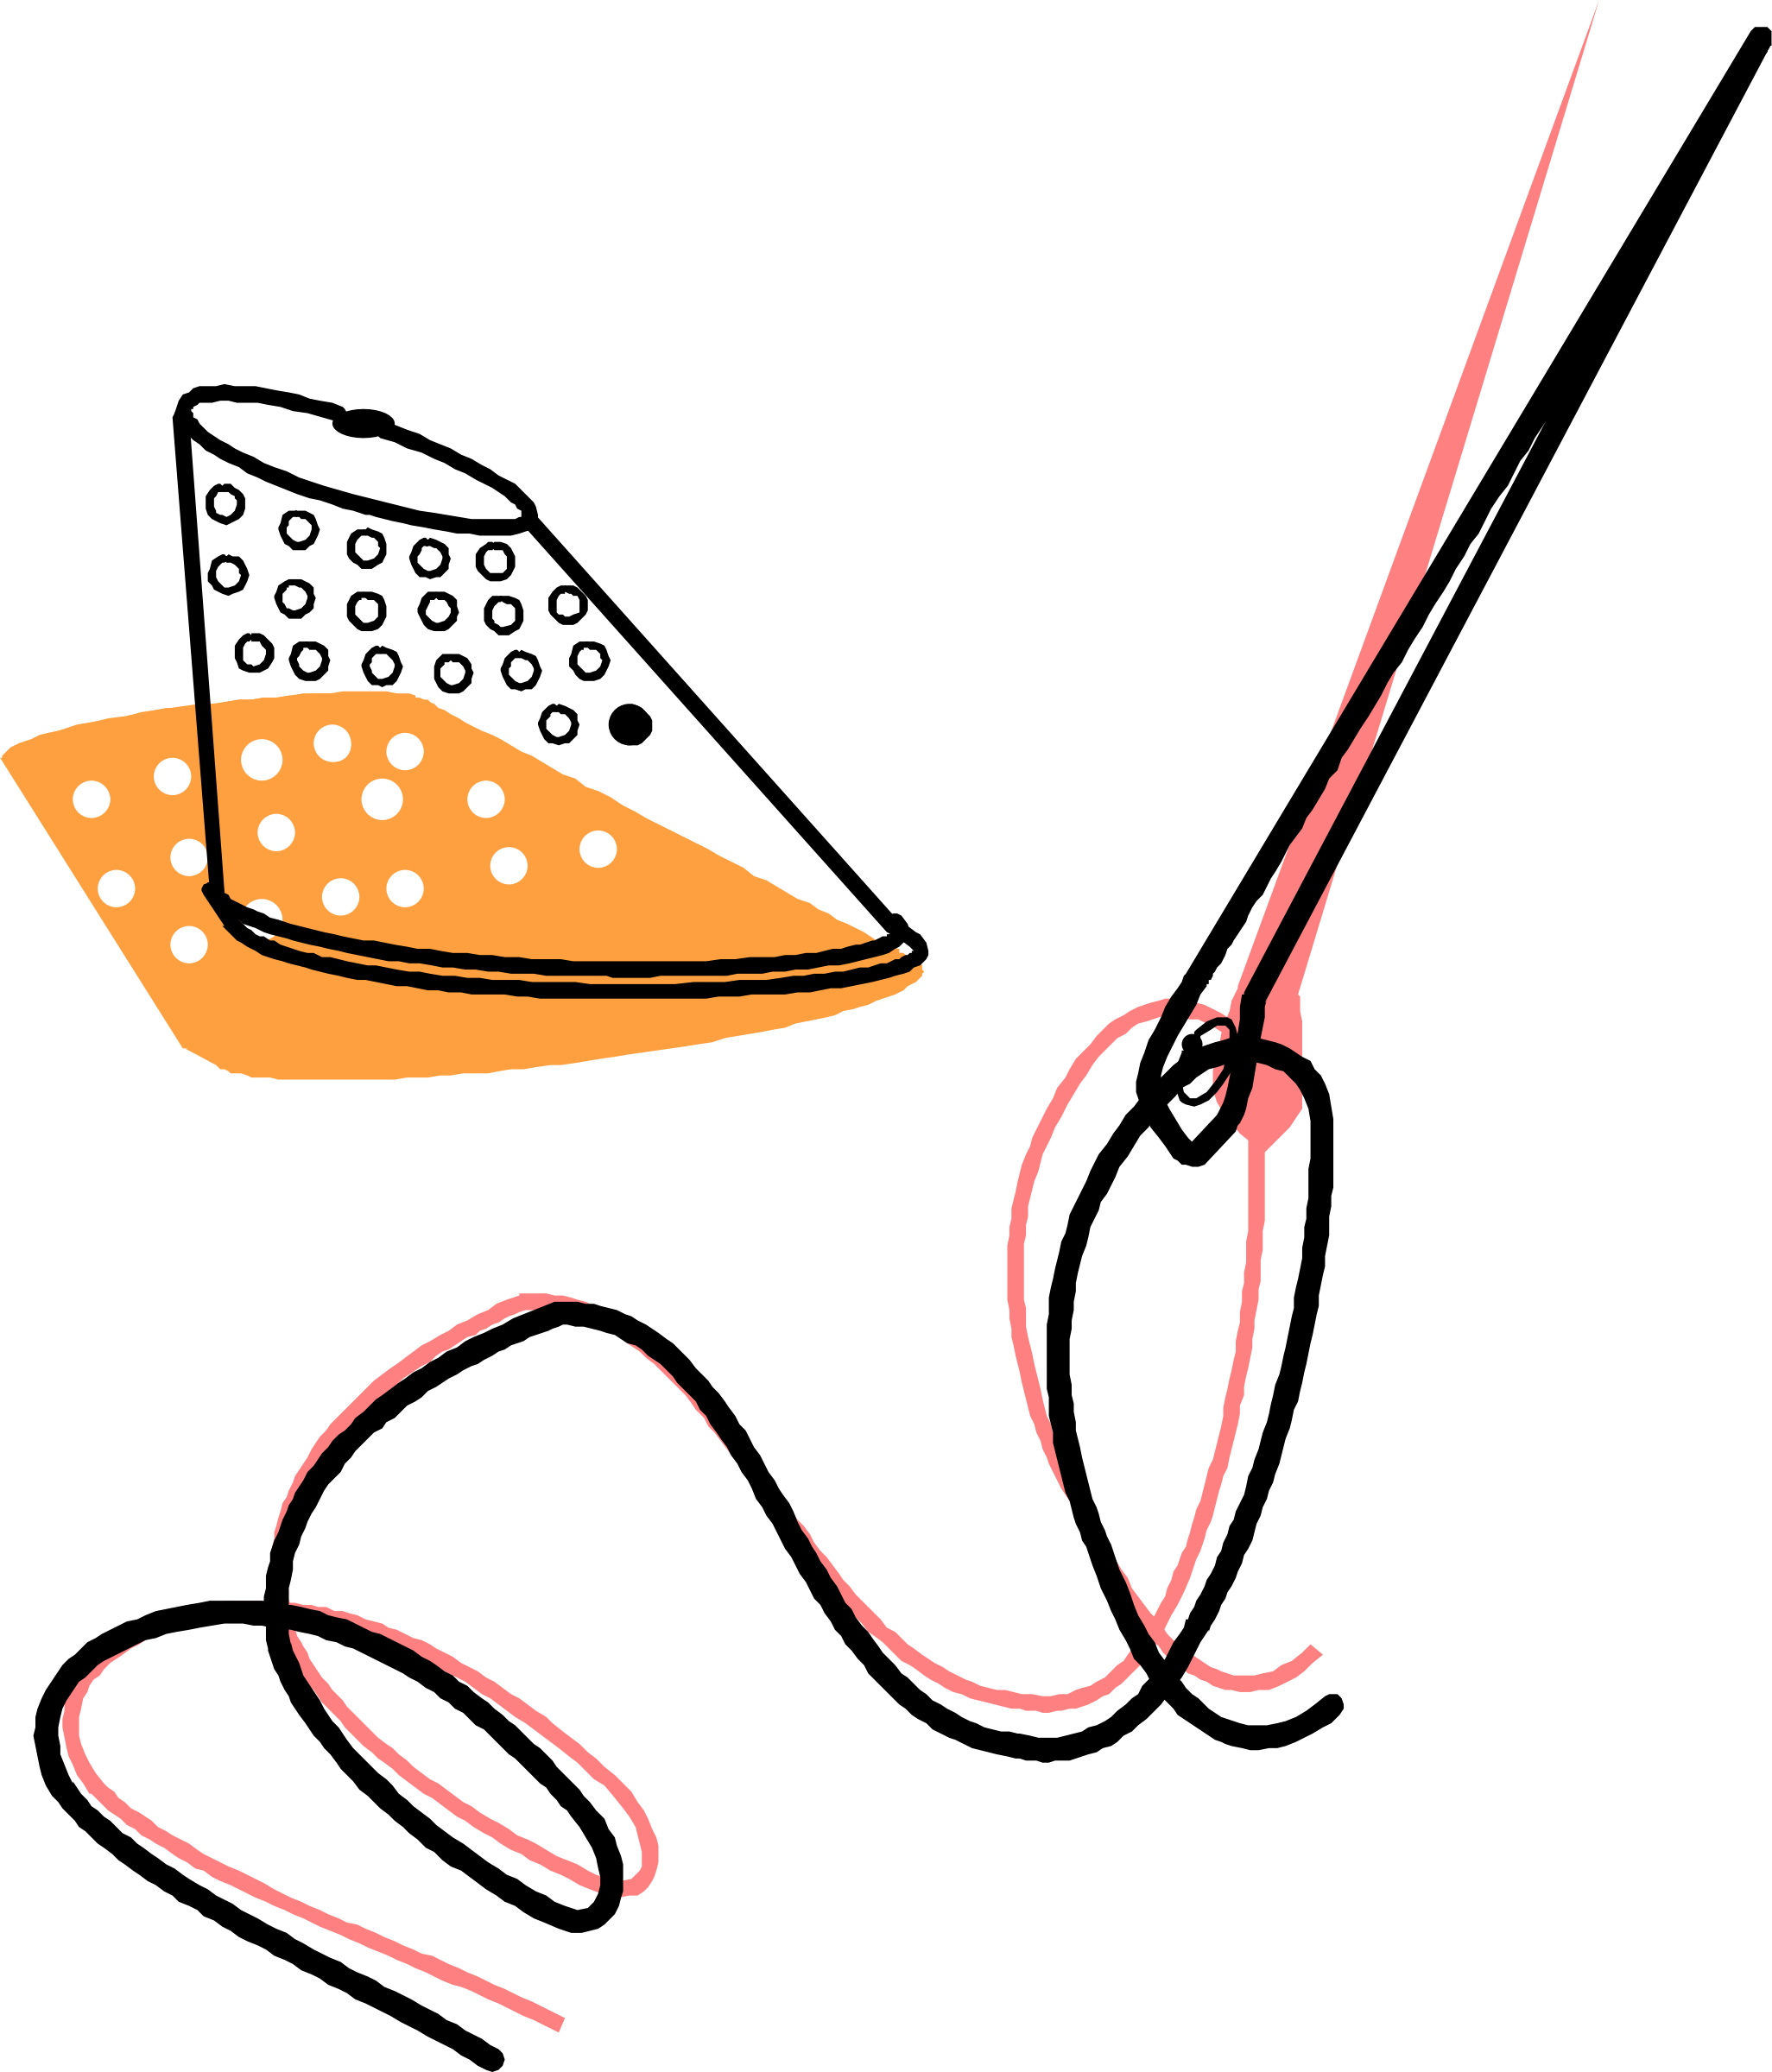 Needle clipart design. Thread and timble icons